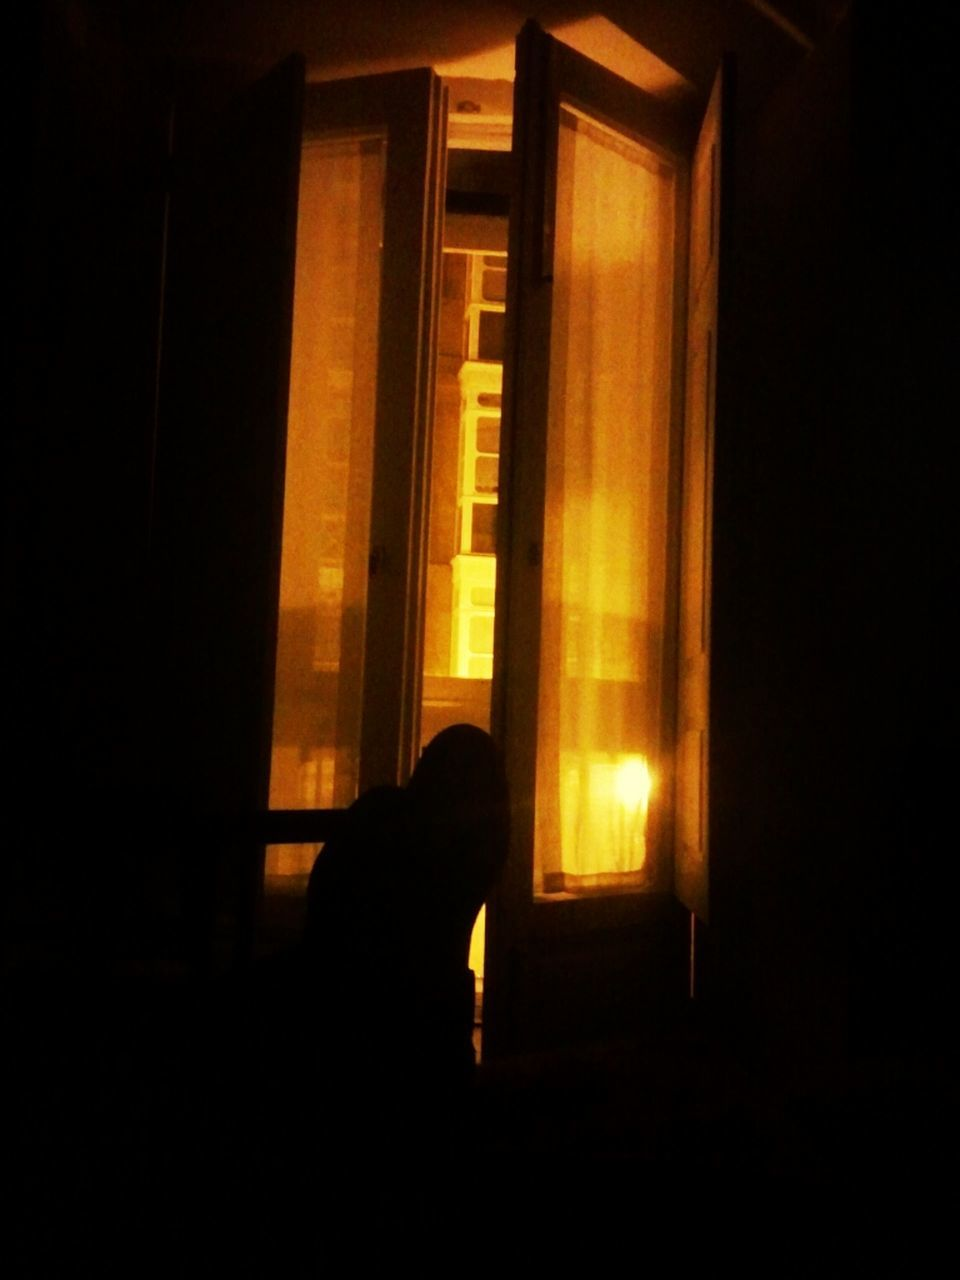 indoors, window, silhouette, one person, drapes, real people, day, people